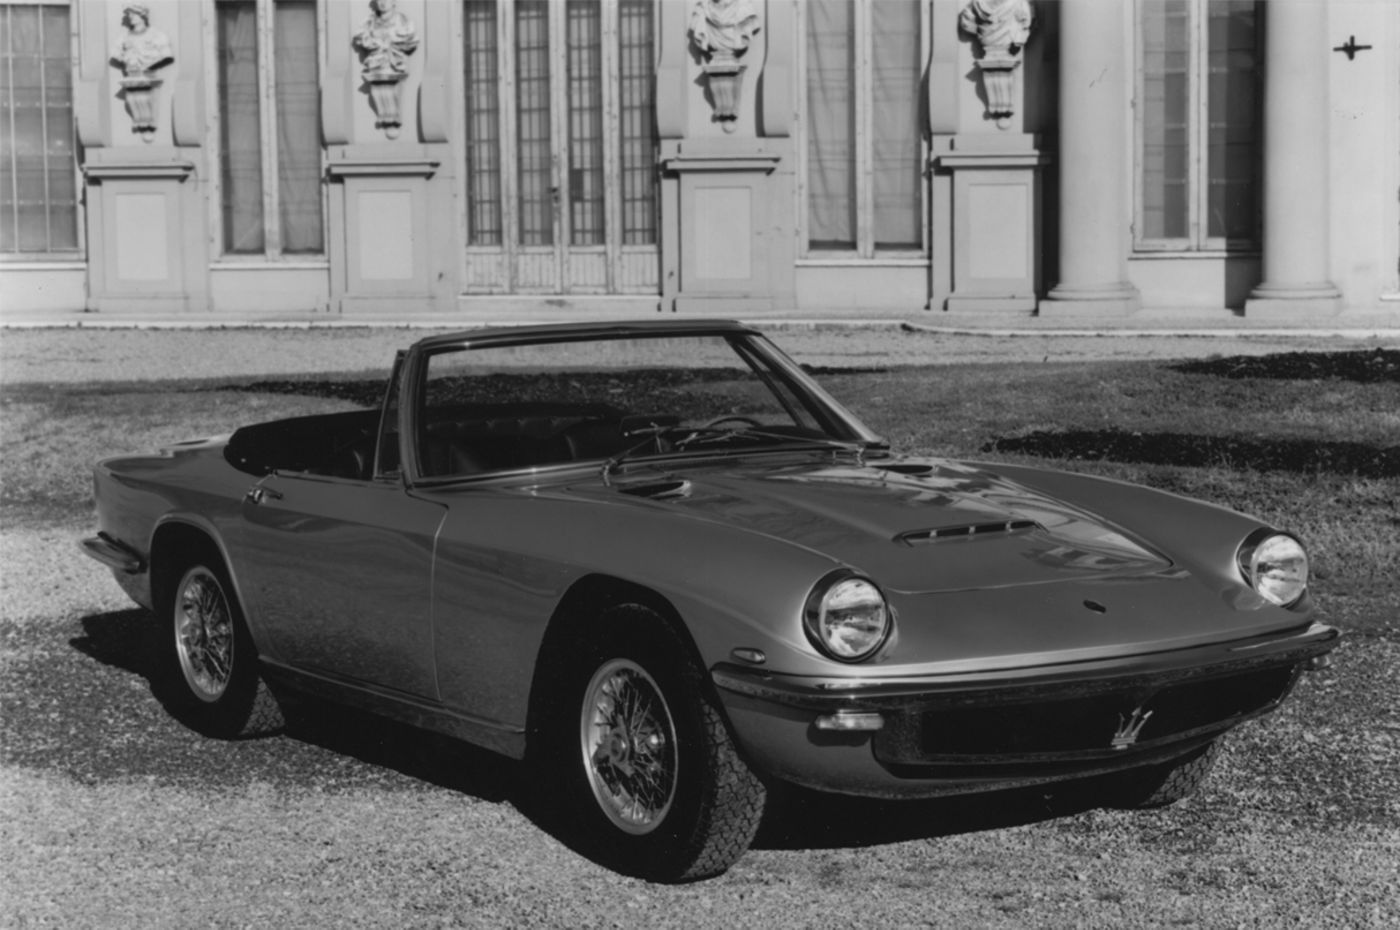 1964 Maserati Mistral Spyder - the classic sports car convertible